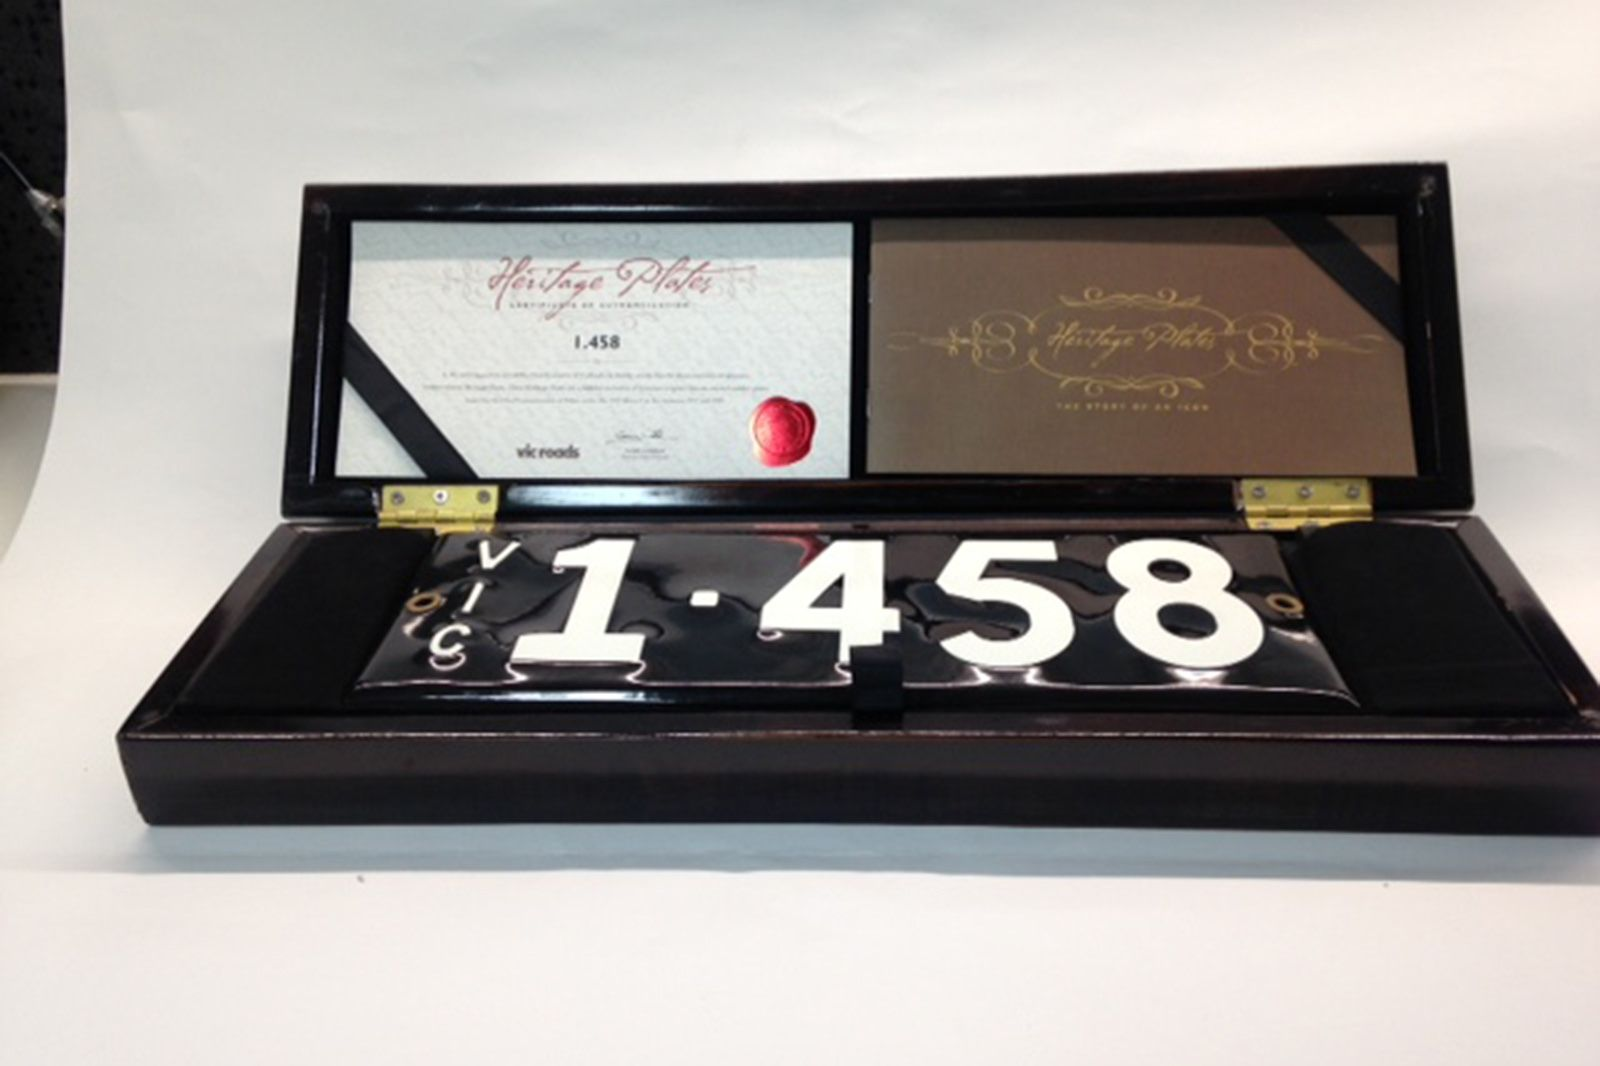 Victorian Numerical Heritage Plate - '1.458'